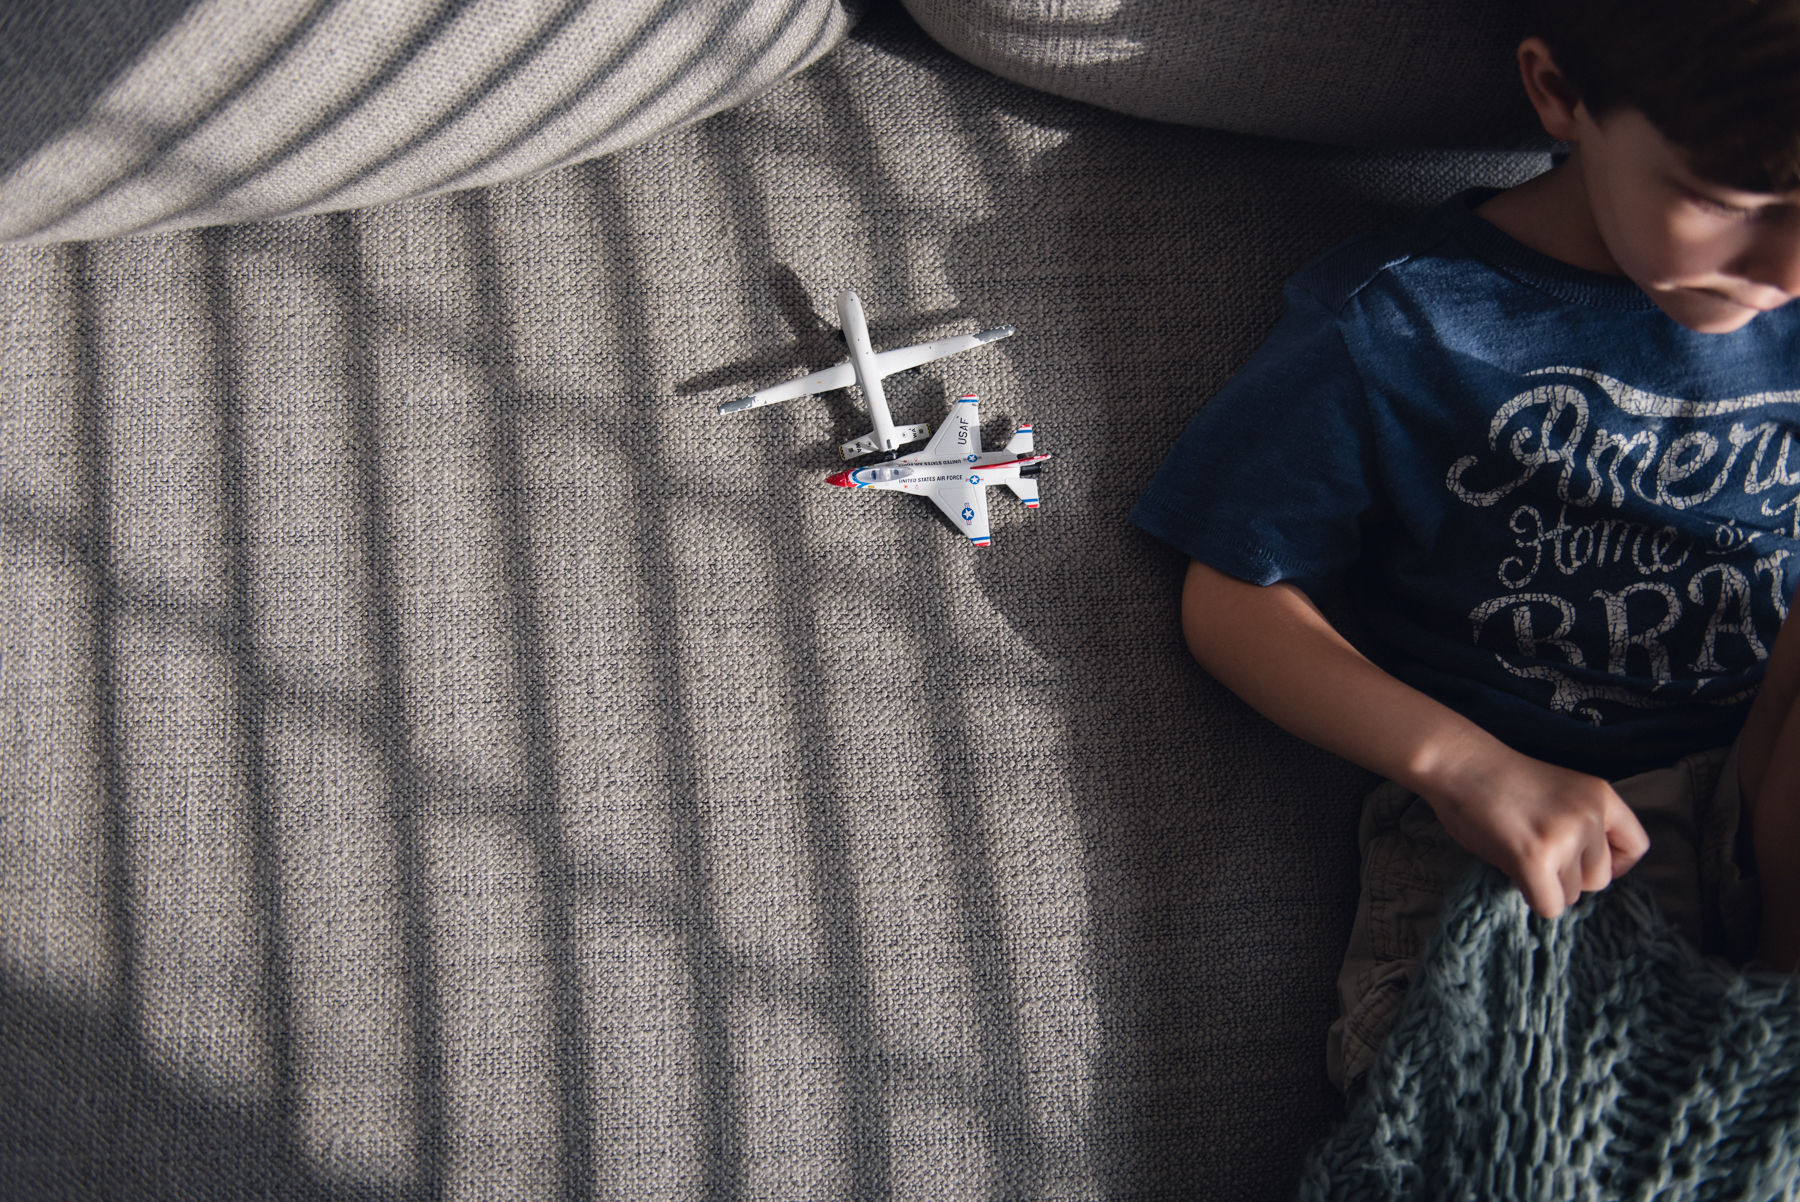 toy planes in natural light next to child on a couch photo by megan cieloha